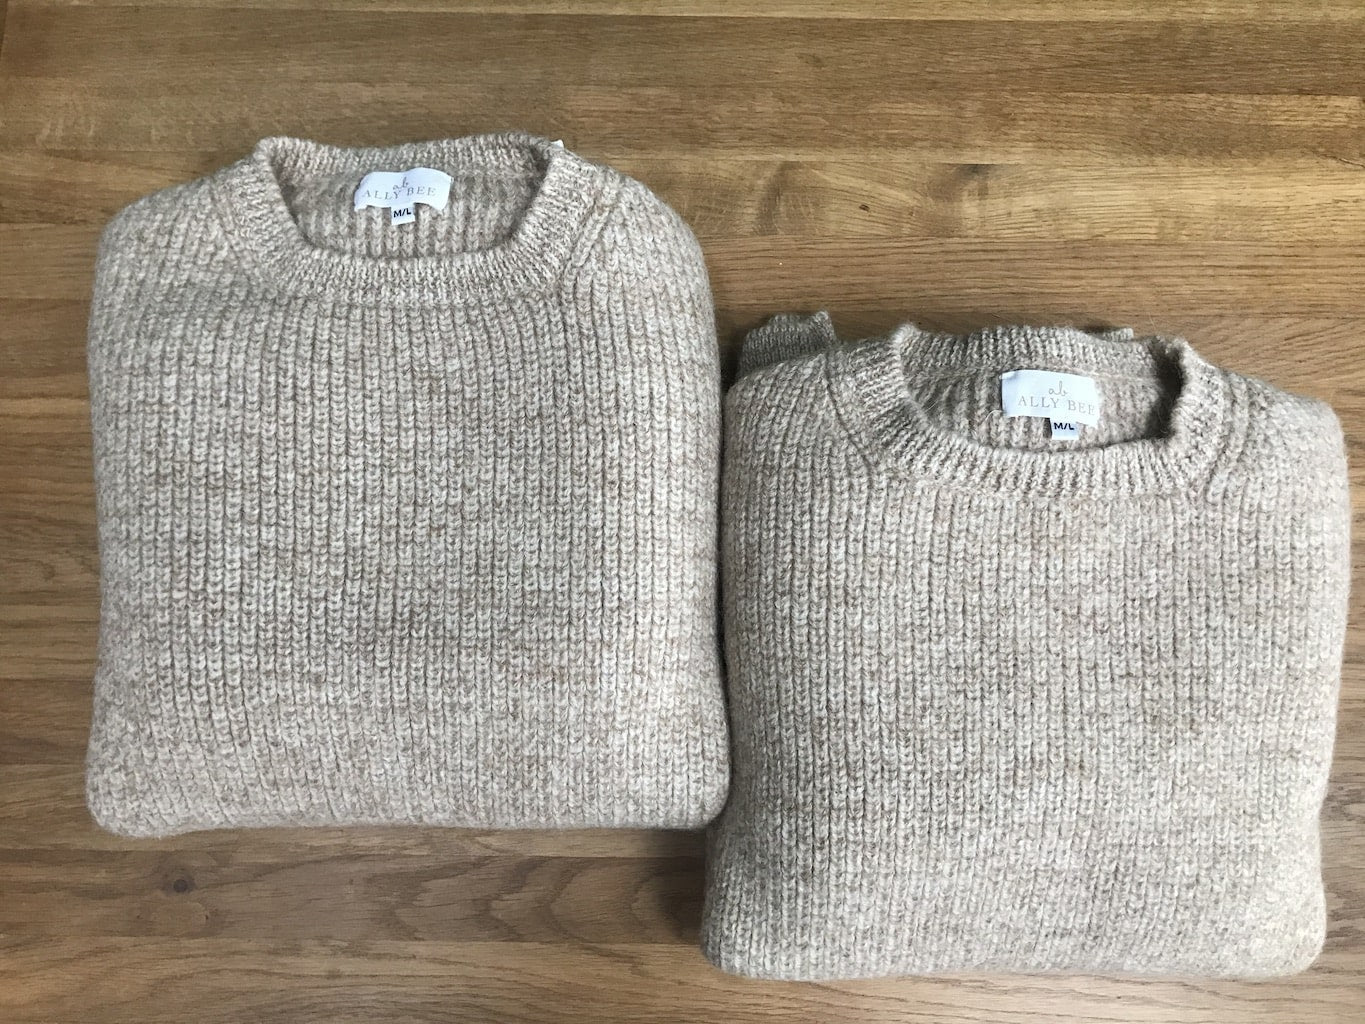 Caramel Marl Alpaca Wool Jumper - crew neck, brown cream marl